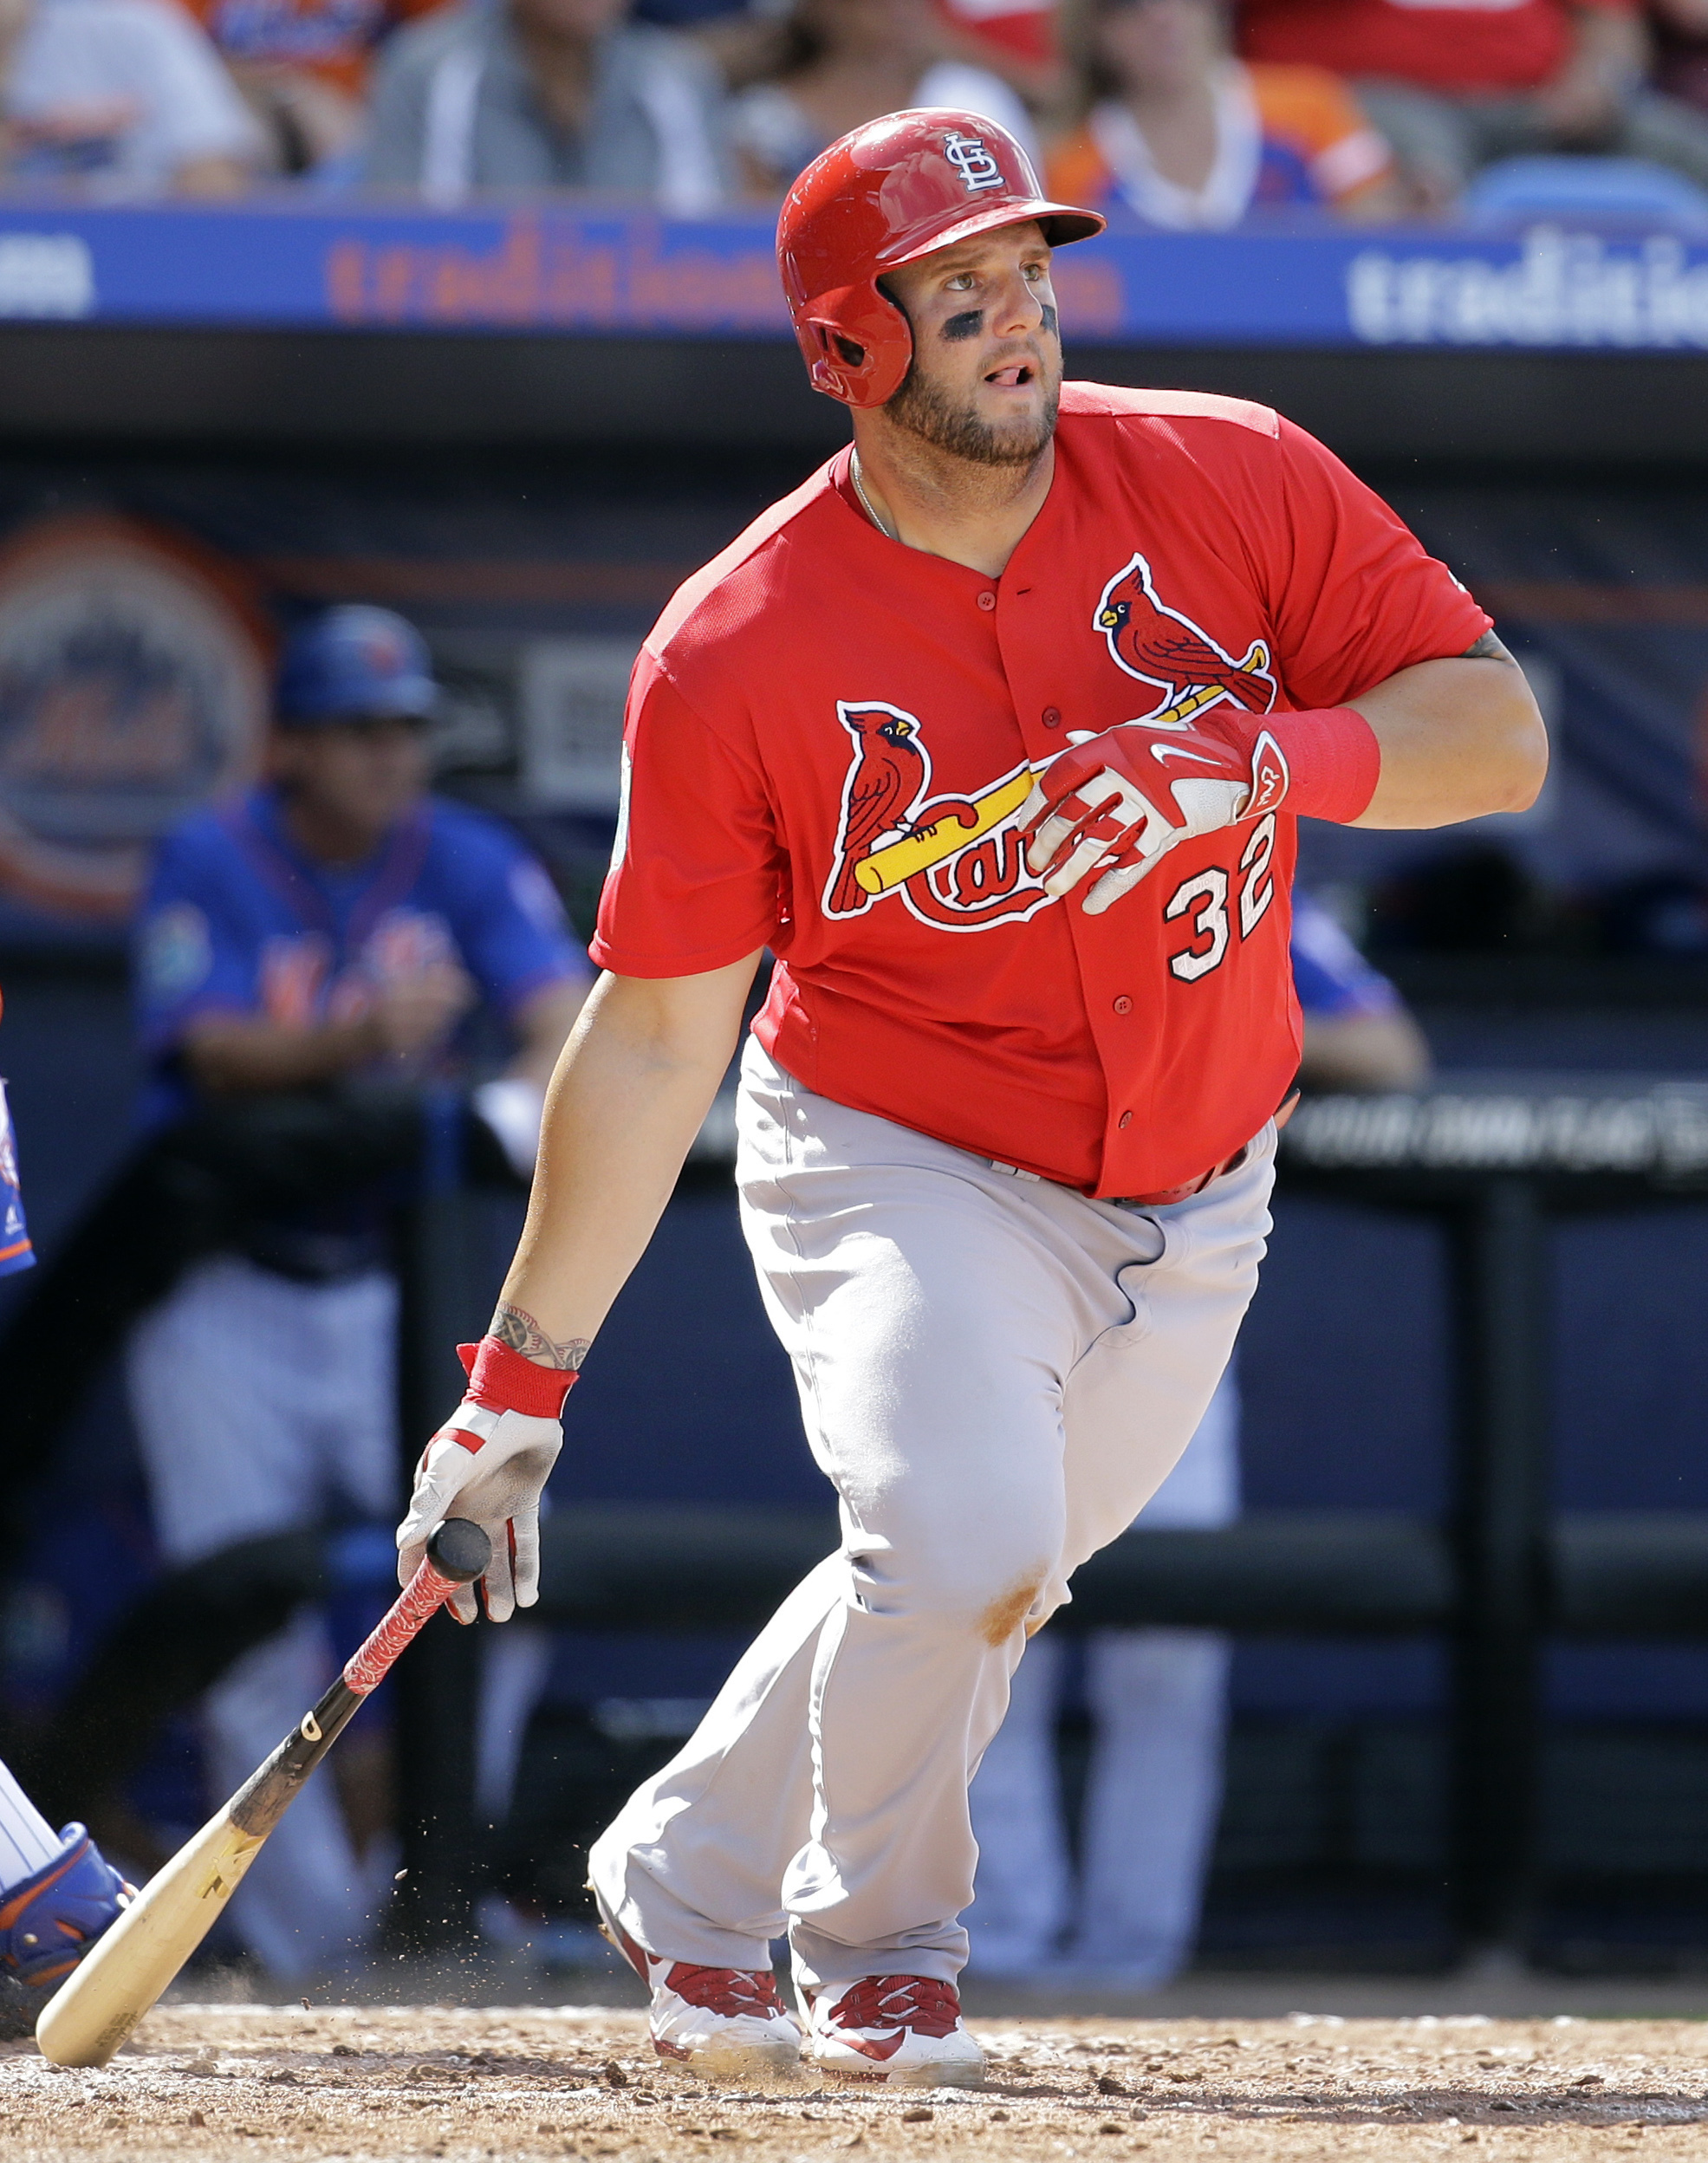 St. Louis Cardinals' Matt Adams watches his double during the sixth inning of an exhibition spring training baseball game against the New York Mets Thursday, March 10, 2016, in Port St. Lucie, Fla. (AP Photo/Jeff Roberson)